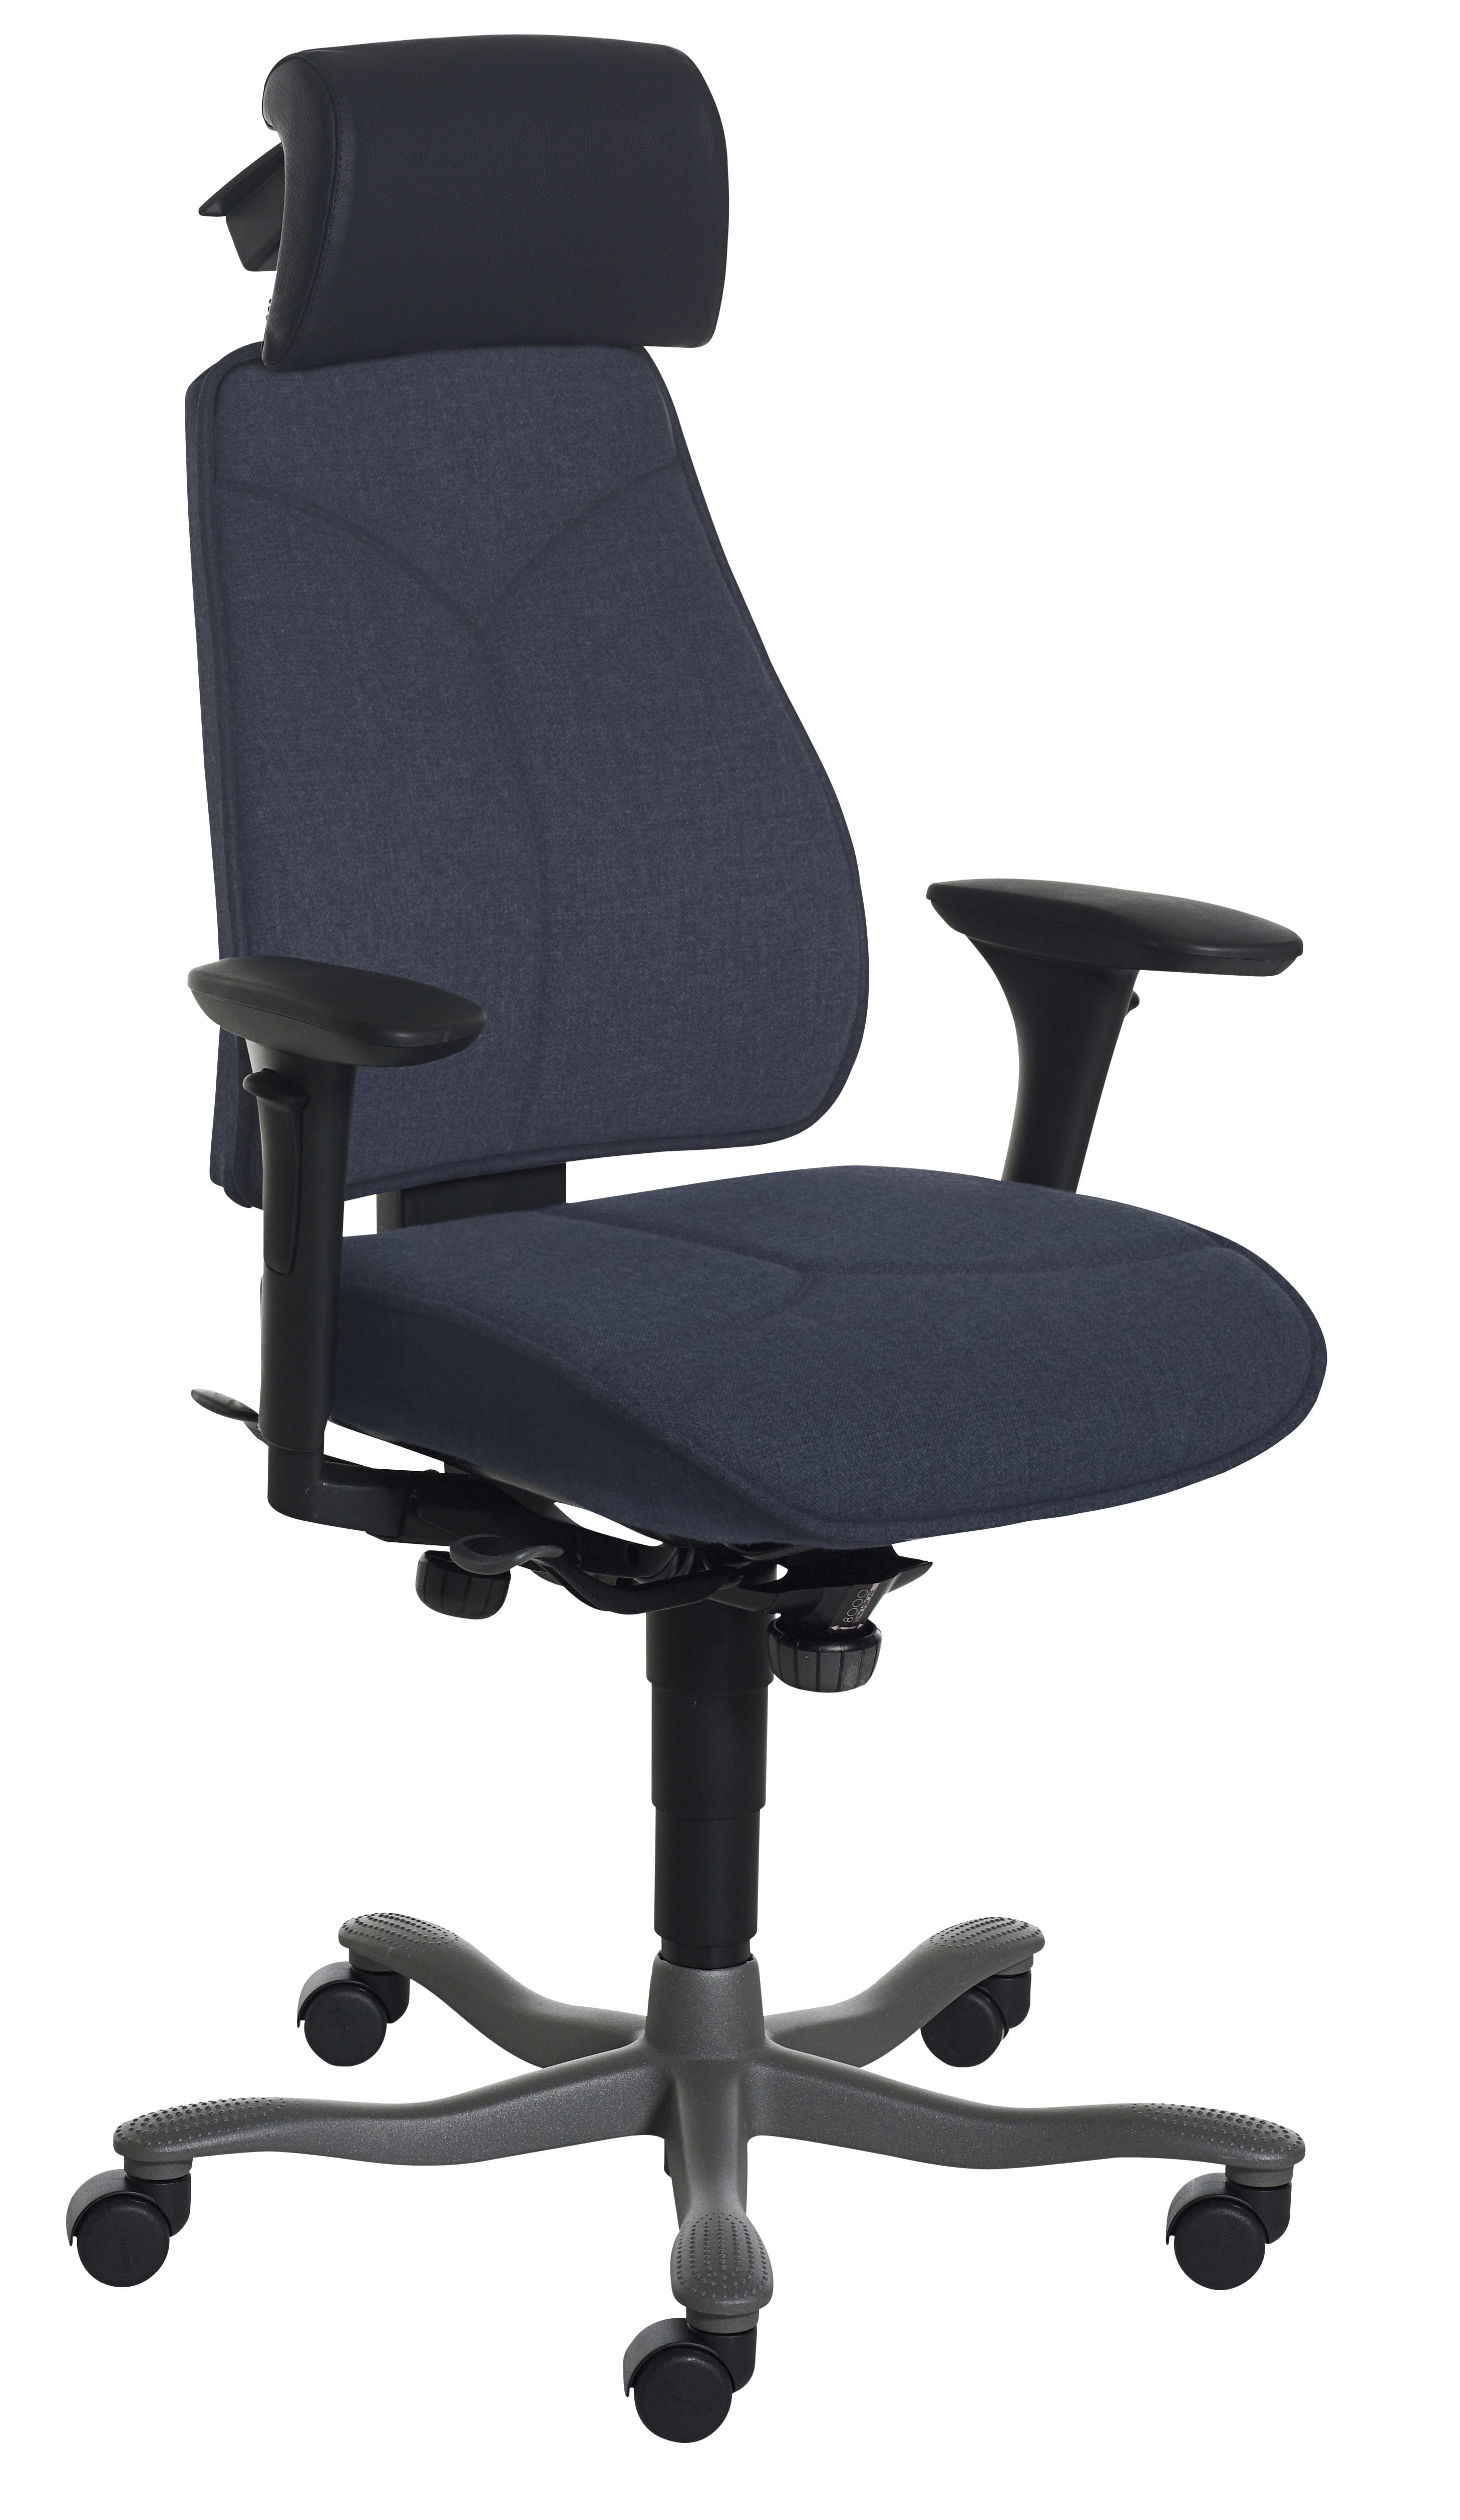 chair computer and full best ergonomic upholstered of office spinning desk work seat size inexpensive chairs fabric